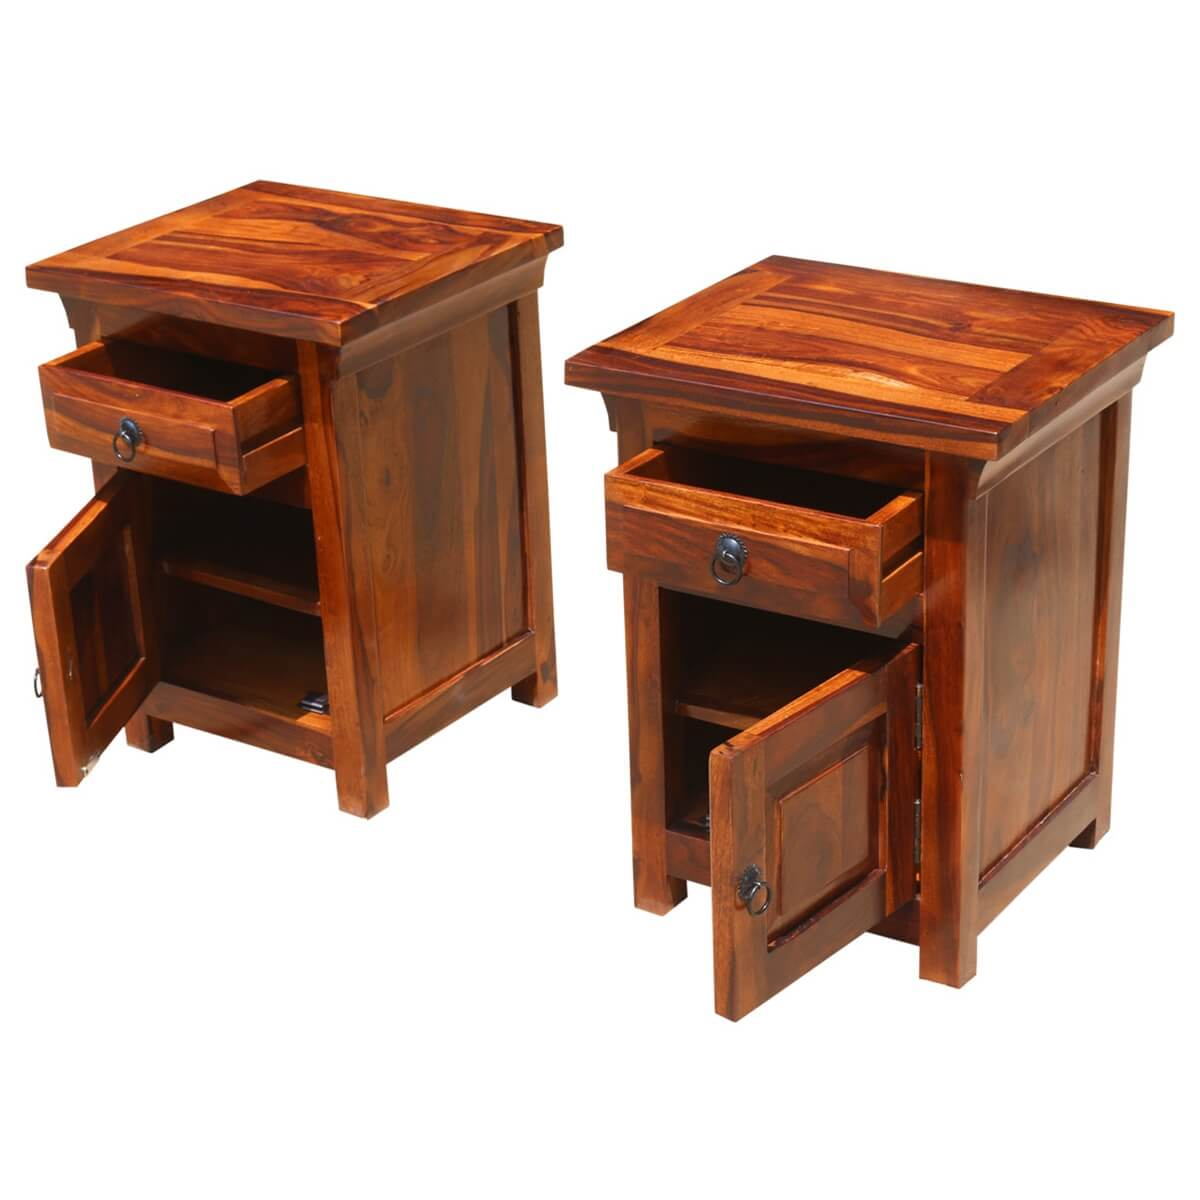 Rustic farmhouse solid wood nightstand end table cabinets for Rustic wood nightstand